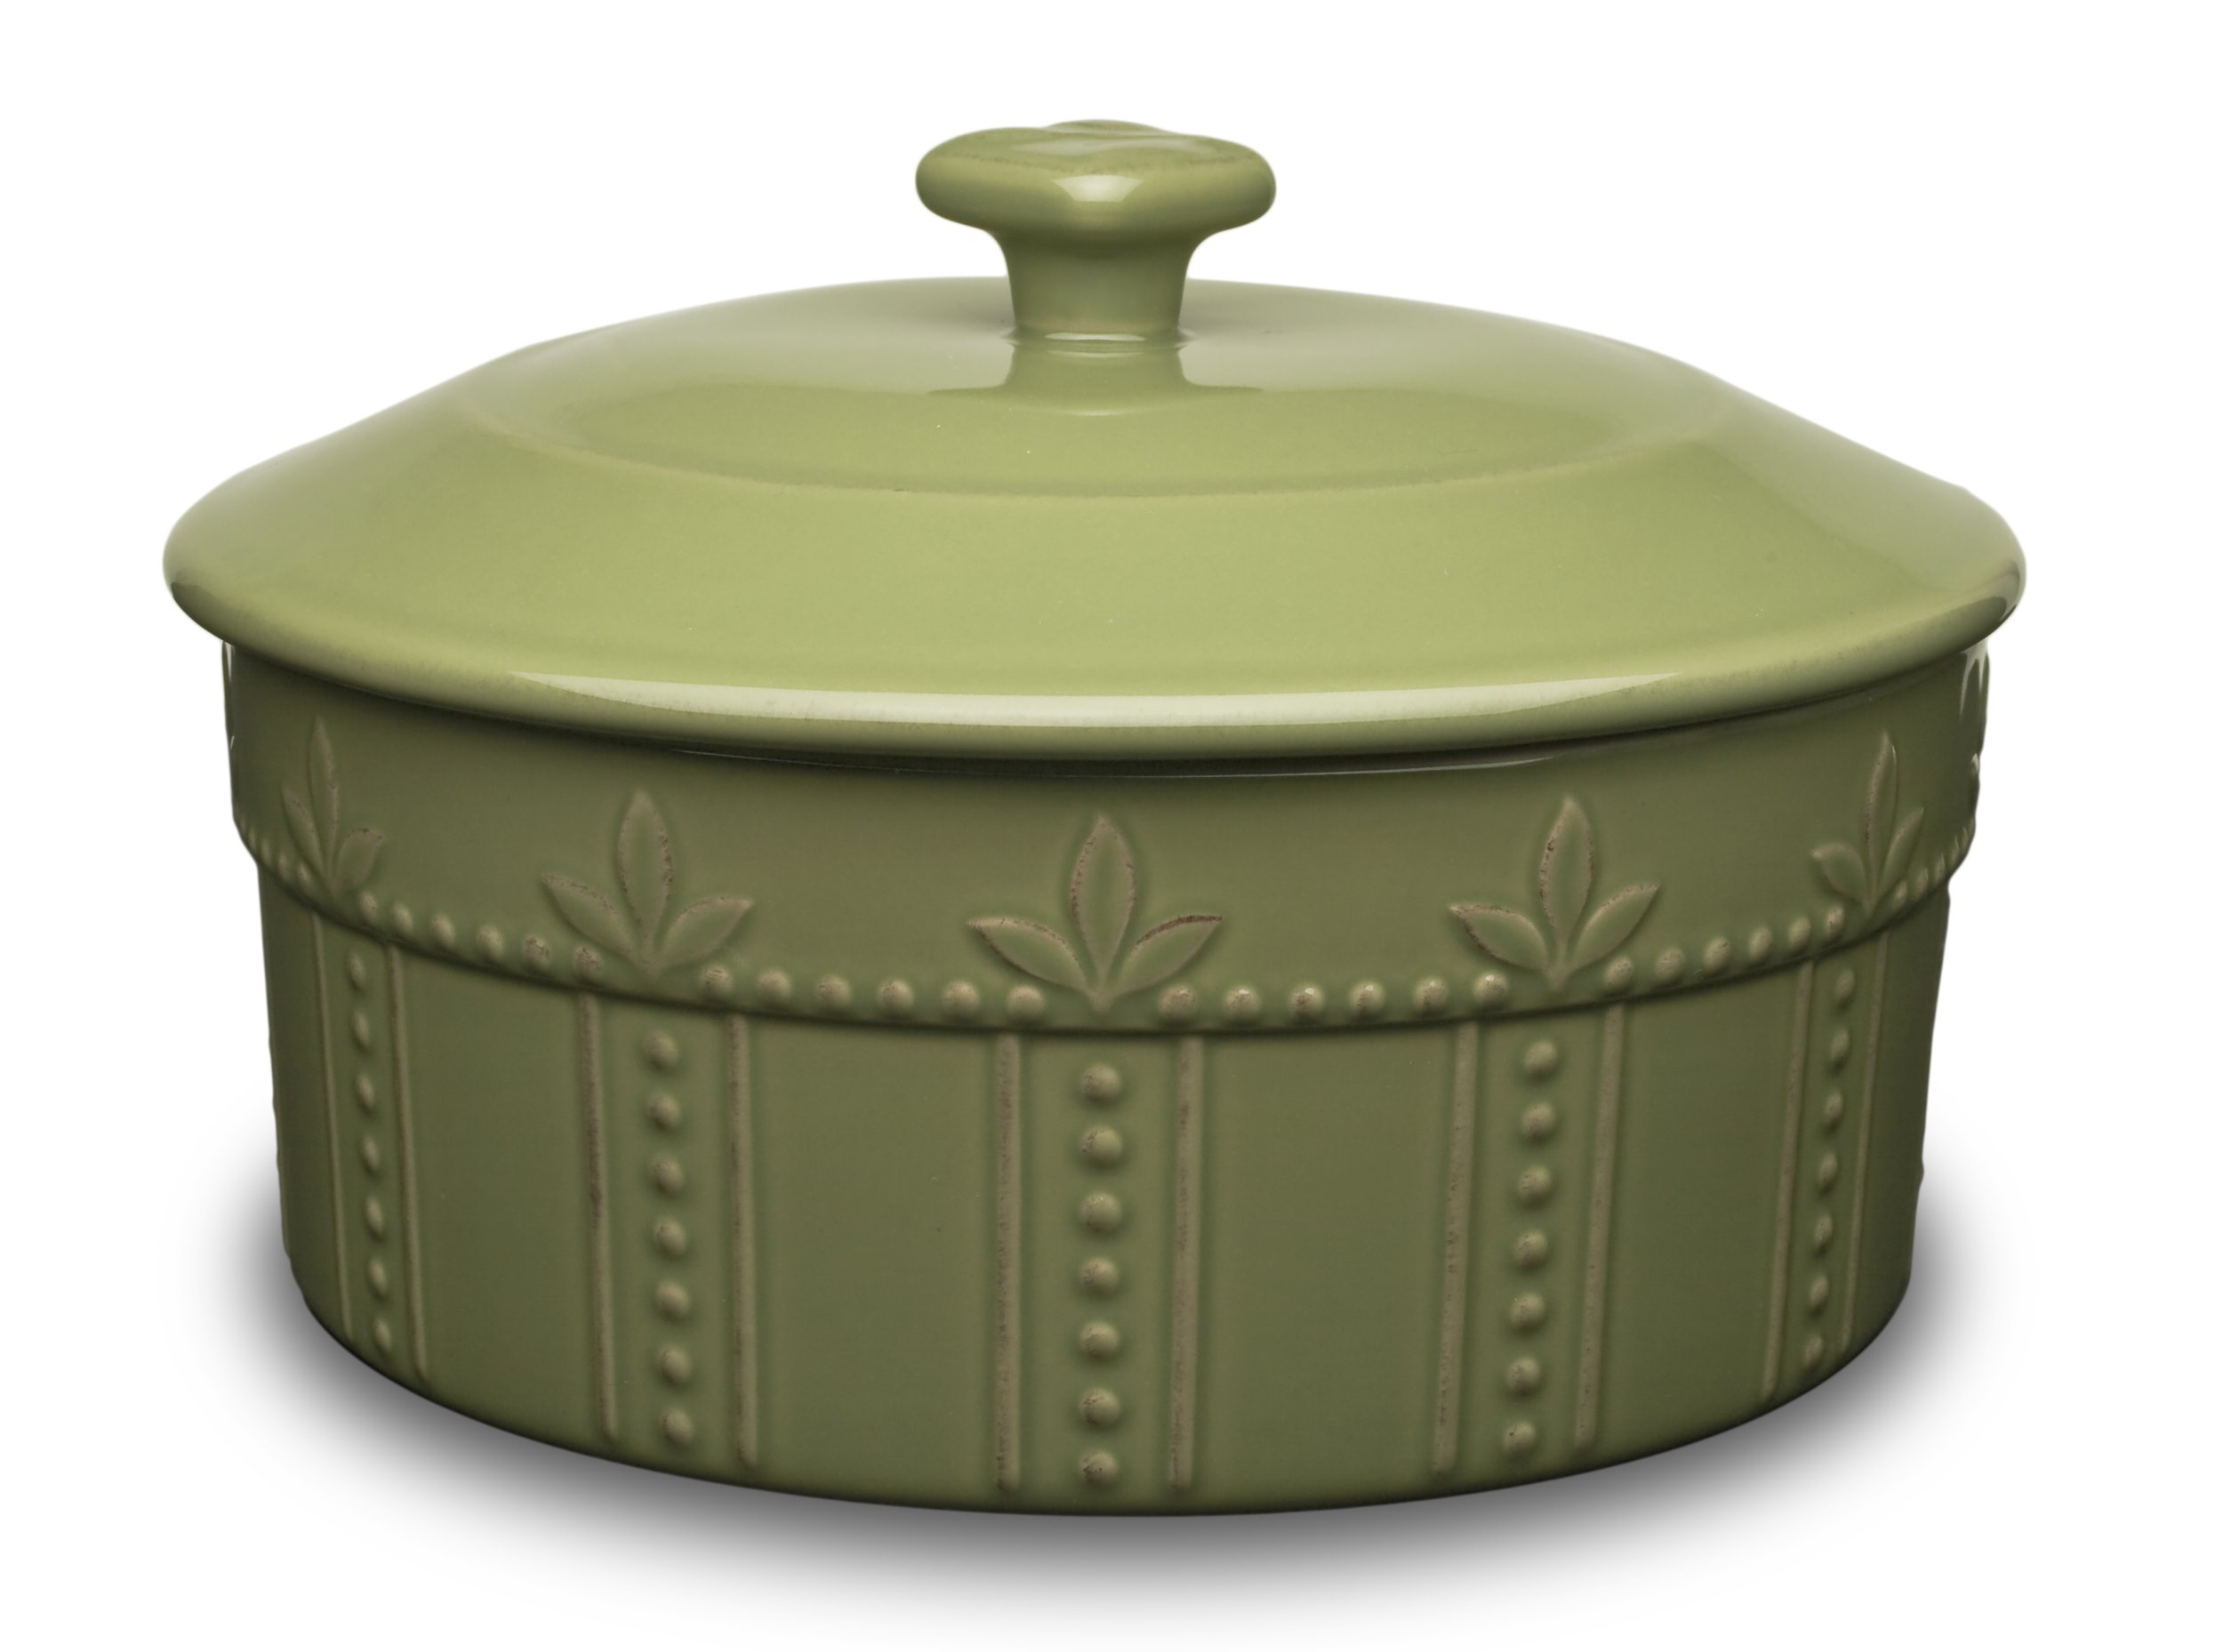 Signature Housewares Sorrento Collection 8.5-Inch Covered Souffle Dish, Green Antiqued Finish